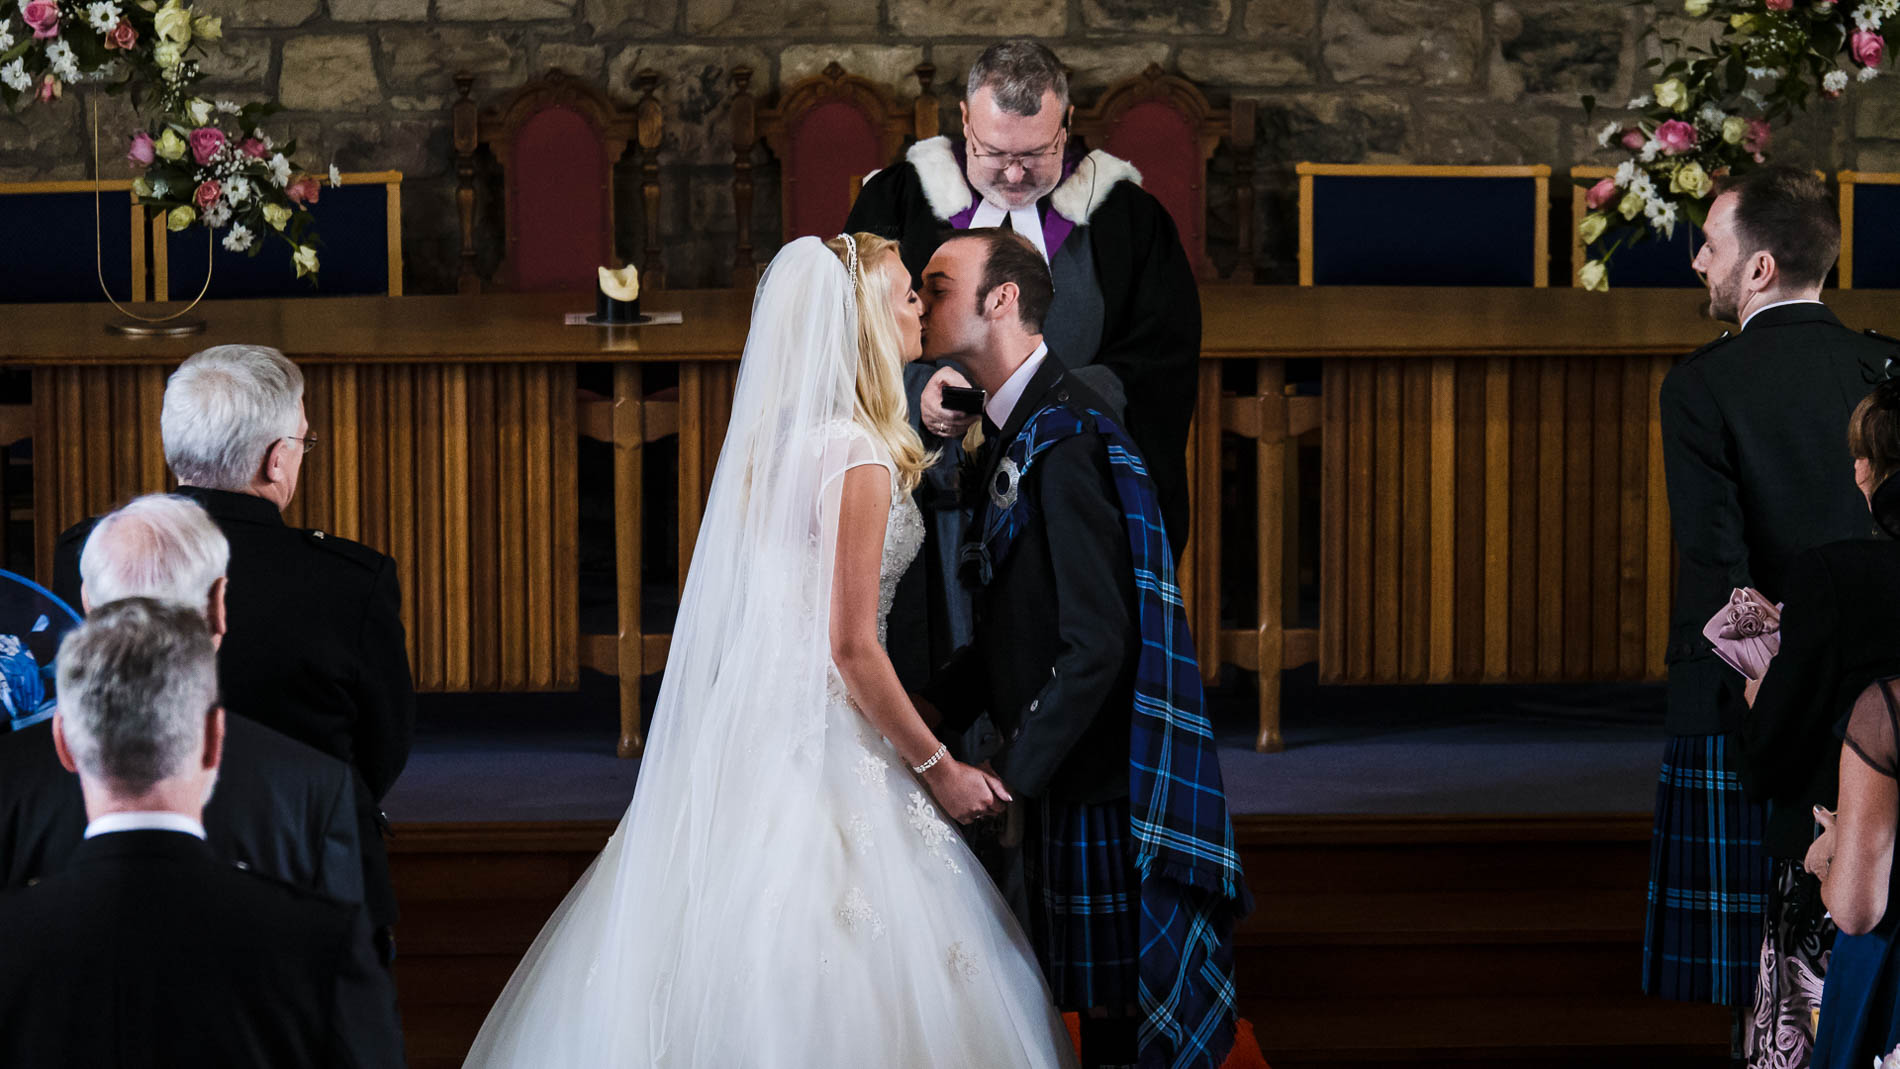 A colour photograph of the bride and groom having their first kiss at the altar of Saint Andrew's Church, Clermiston